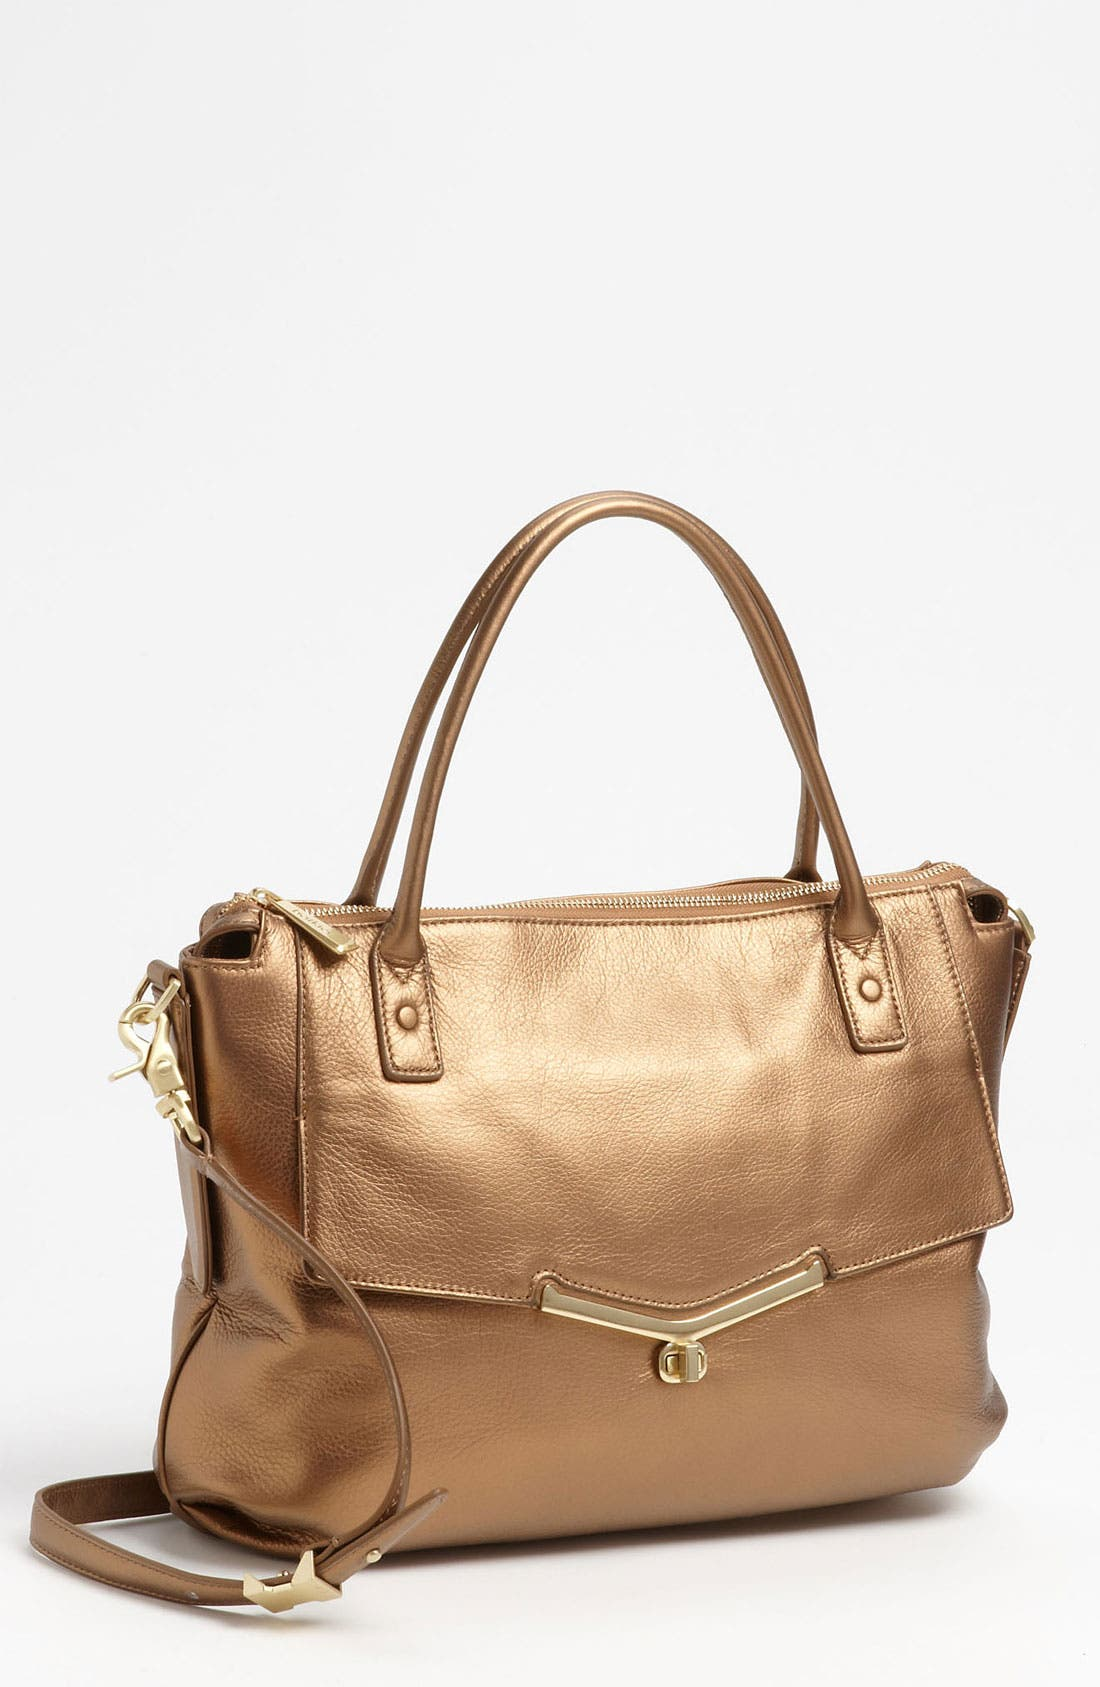 Alternate Image 1 Selected - Botkier 'Valentina' Satchel